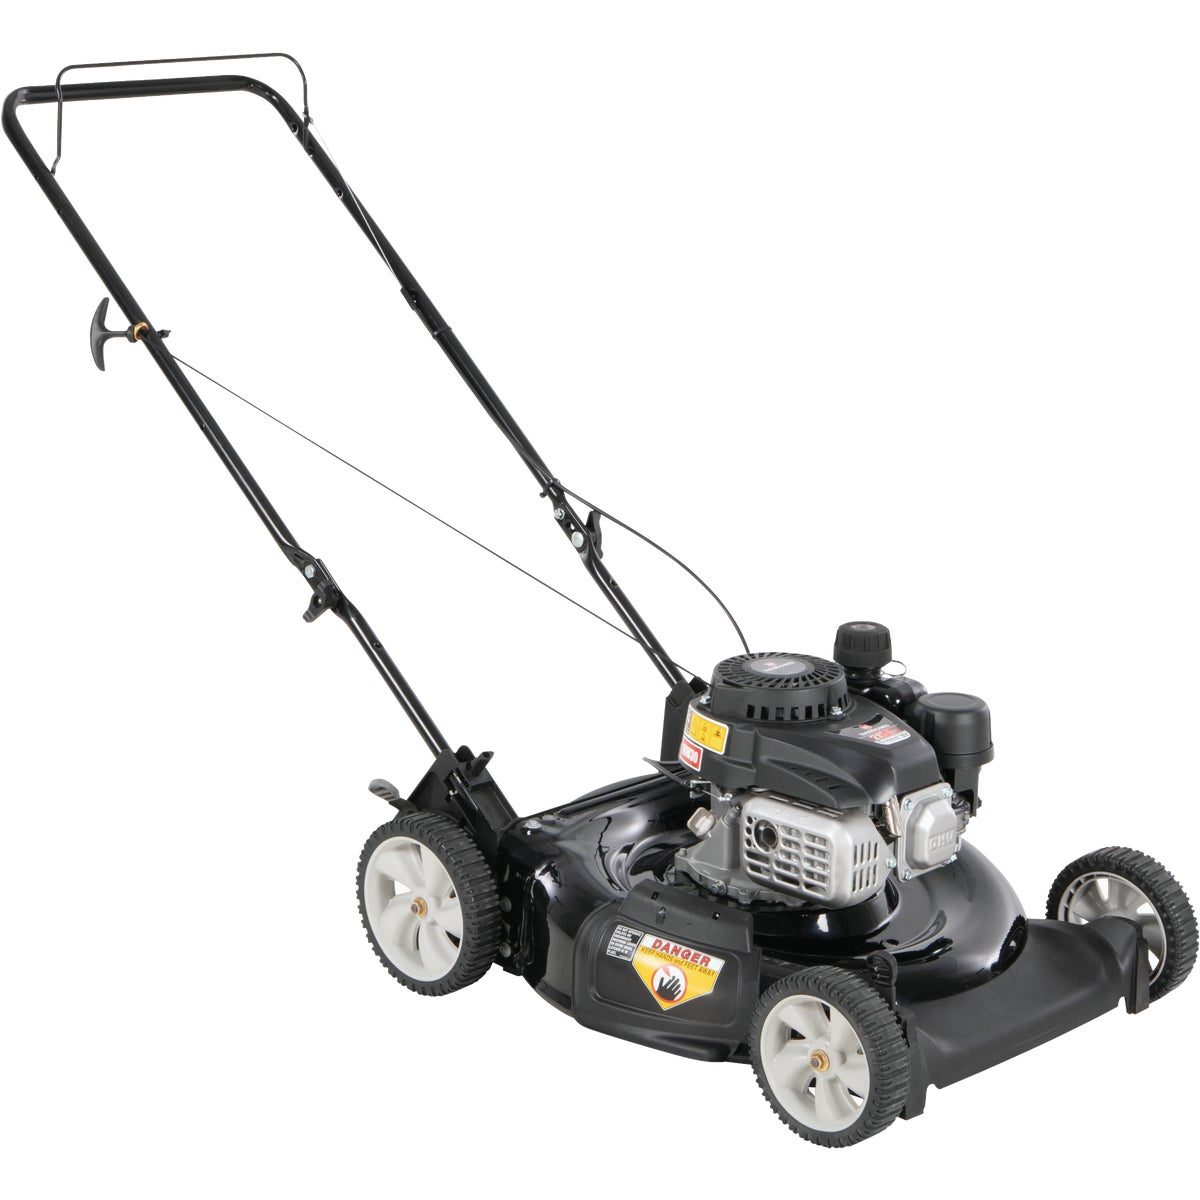 "21"" 2-N-1 HI WHEEL MOWER - 11A-B0S5700 by M T D Products"